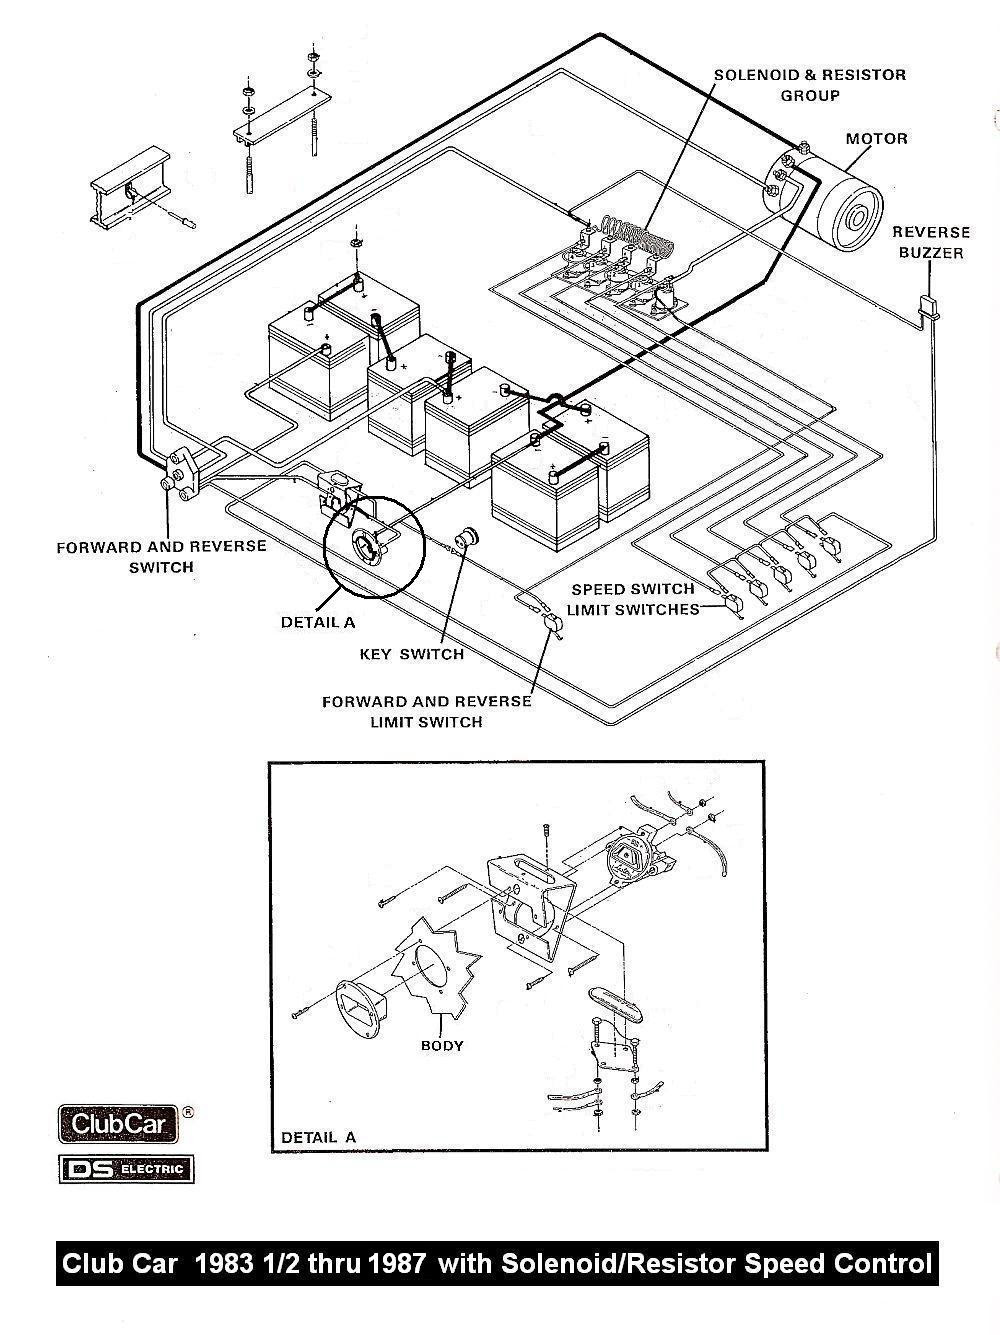 Diagram 1985 Club Car Electrical Diagram Full Version Hd Quality Electrical Diagram Diagramsolden Unbroken Ilfilm It